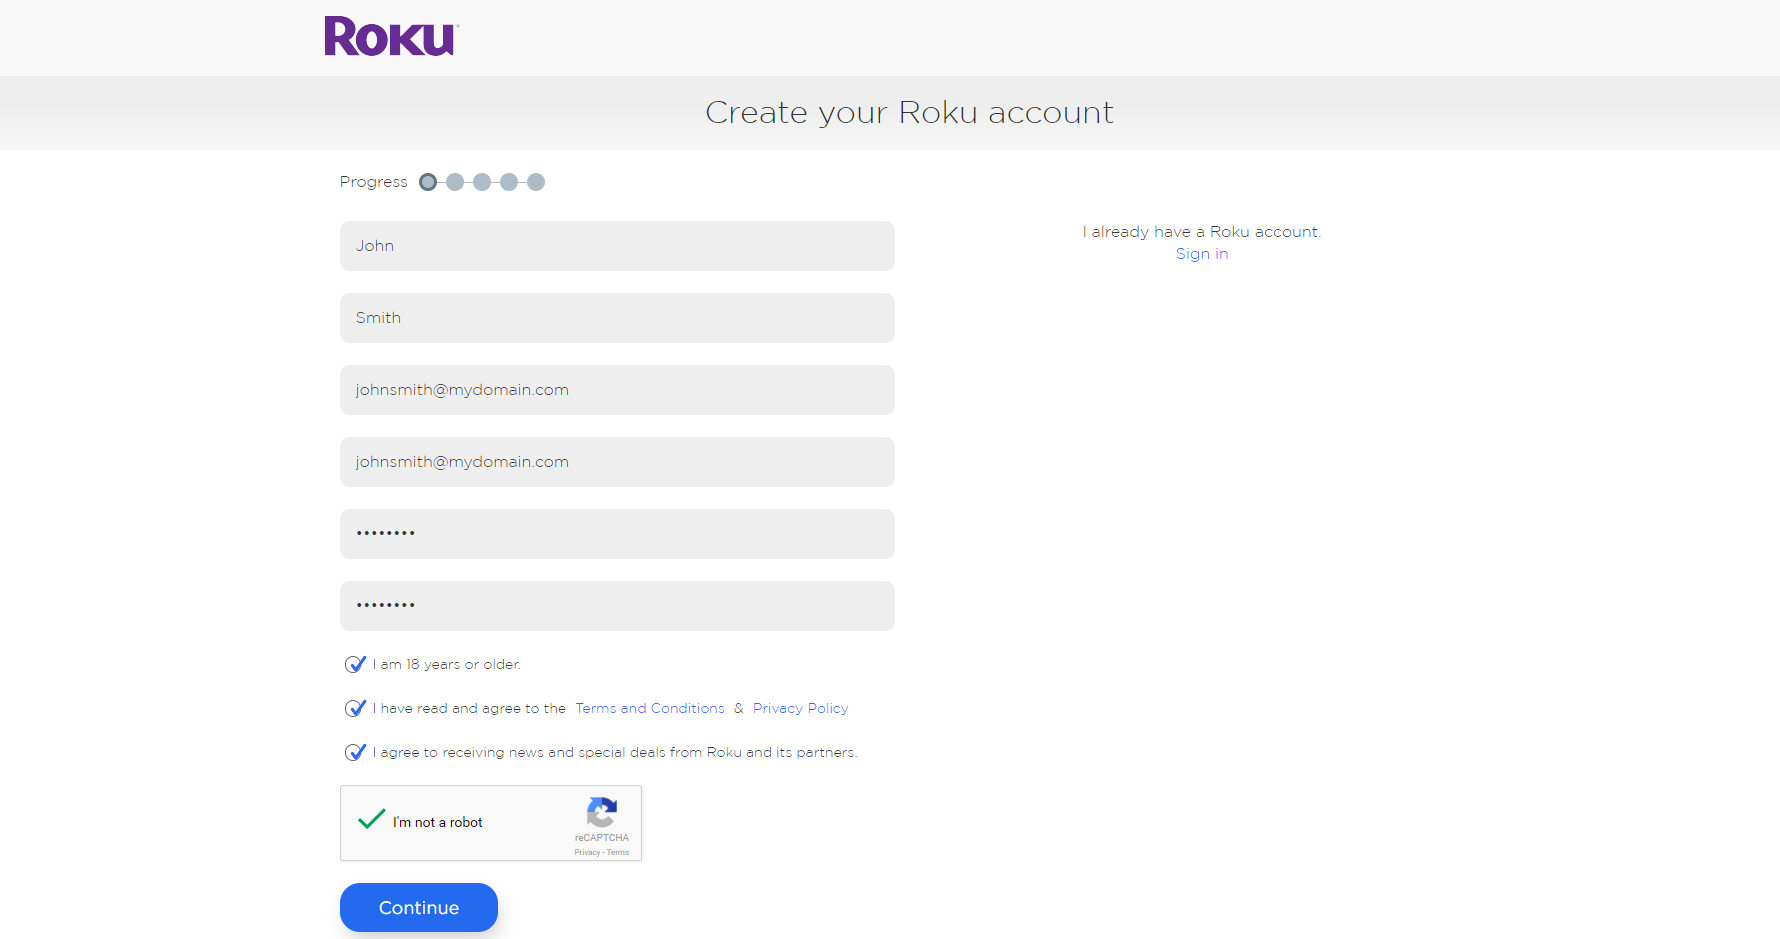 ROKU_SETUP_FILL_OUT_INFO.png